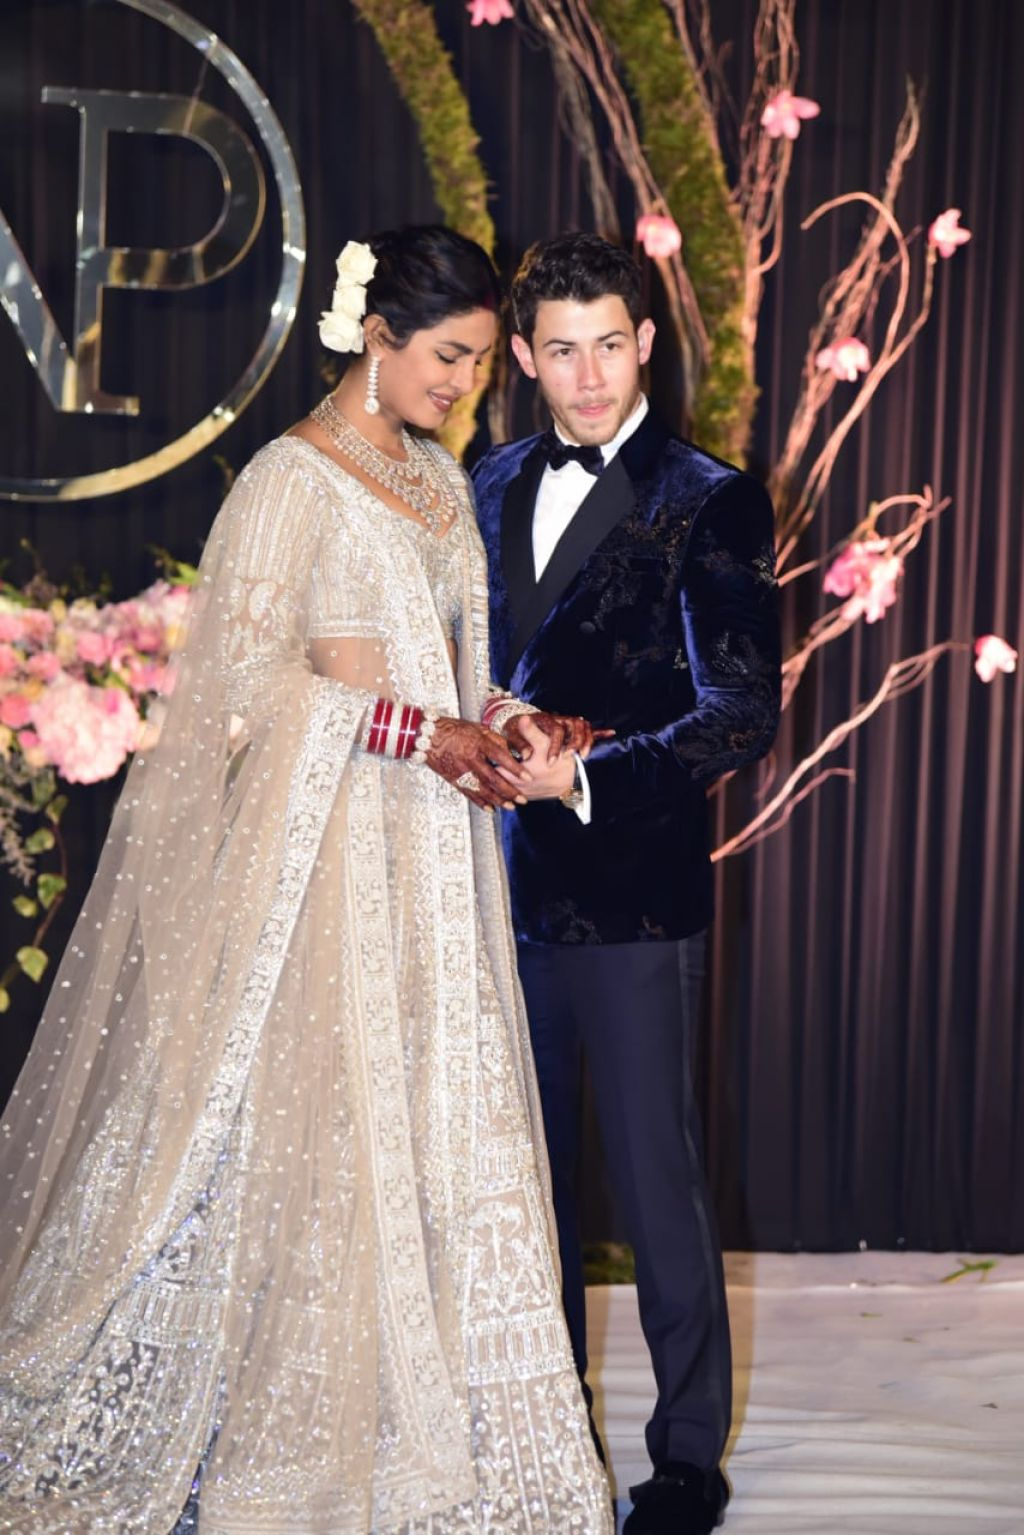 Priyanka Chopra and Nick Jonas  Wedding Photoshoot in Delhi 12042018